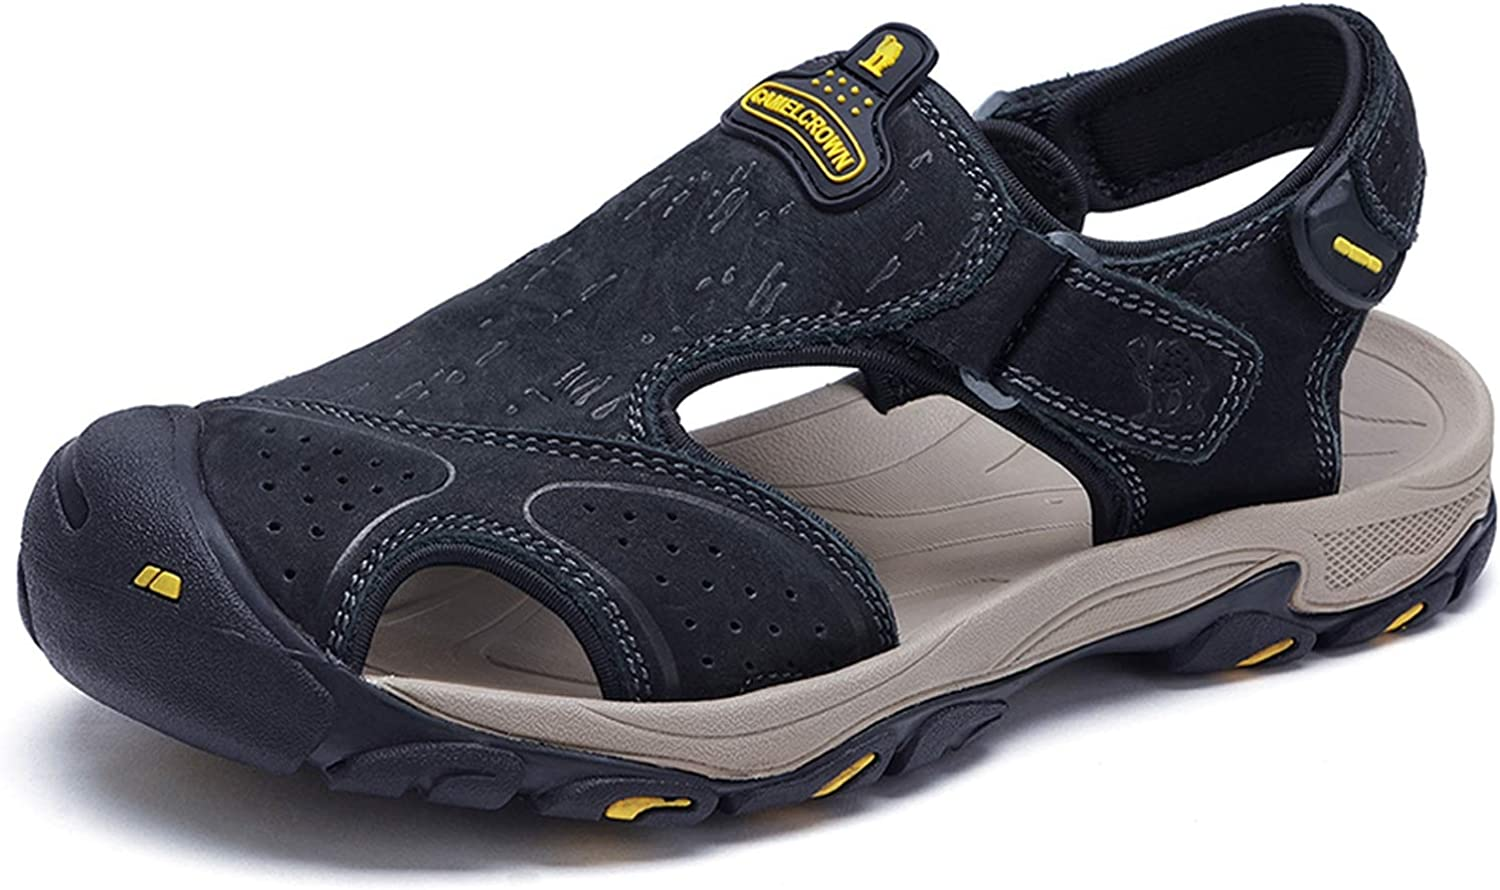 Outdoor Beach Sandal Trekking Traveling Ankle Strap Casual Men shoes